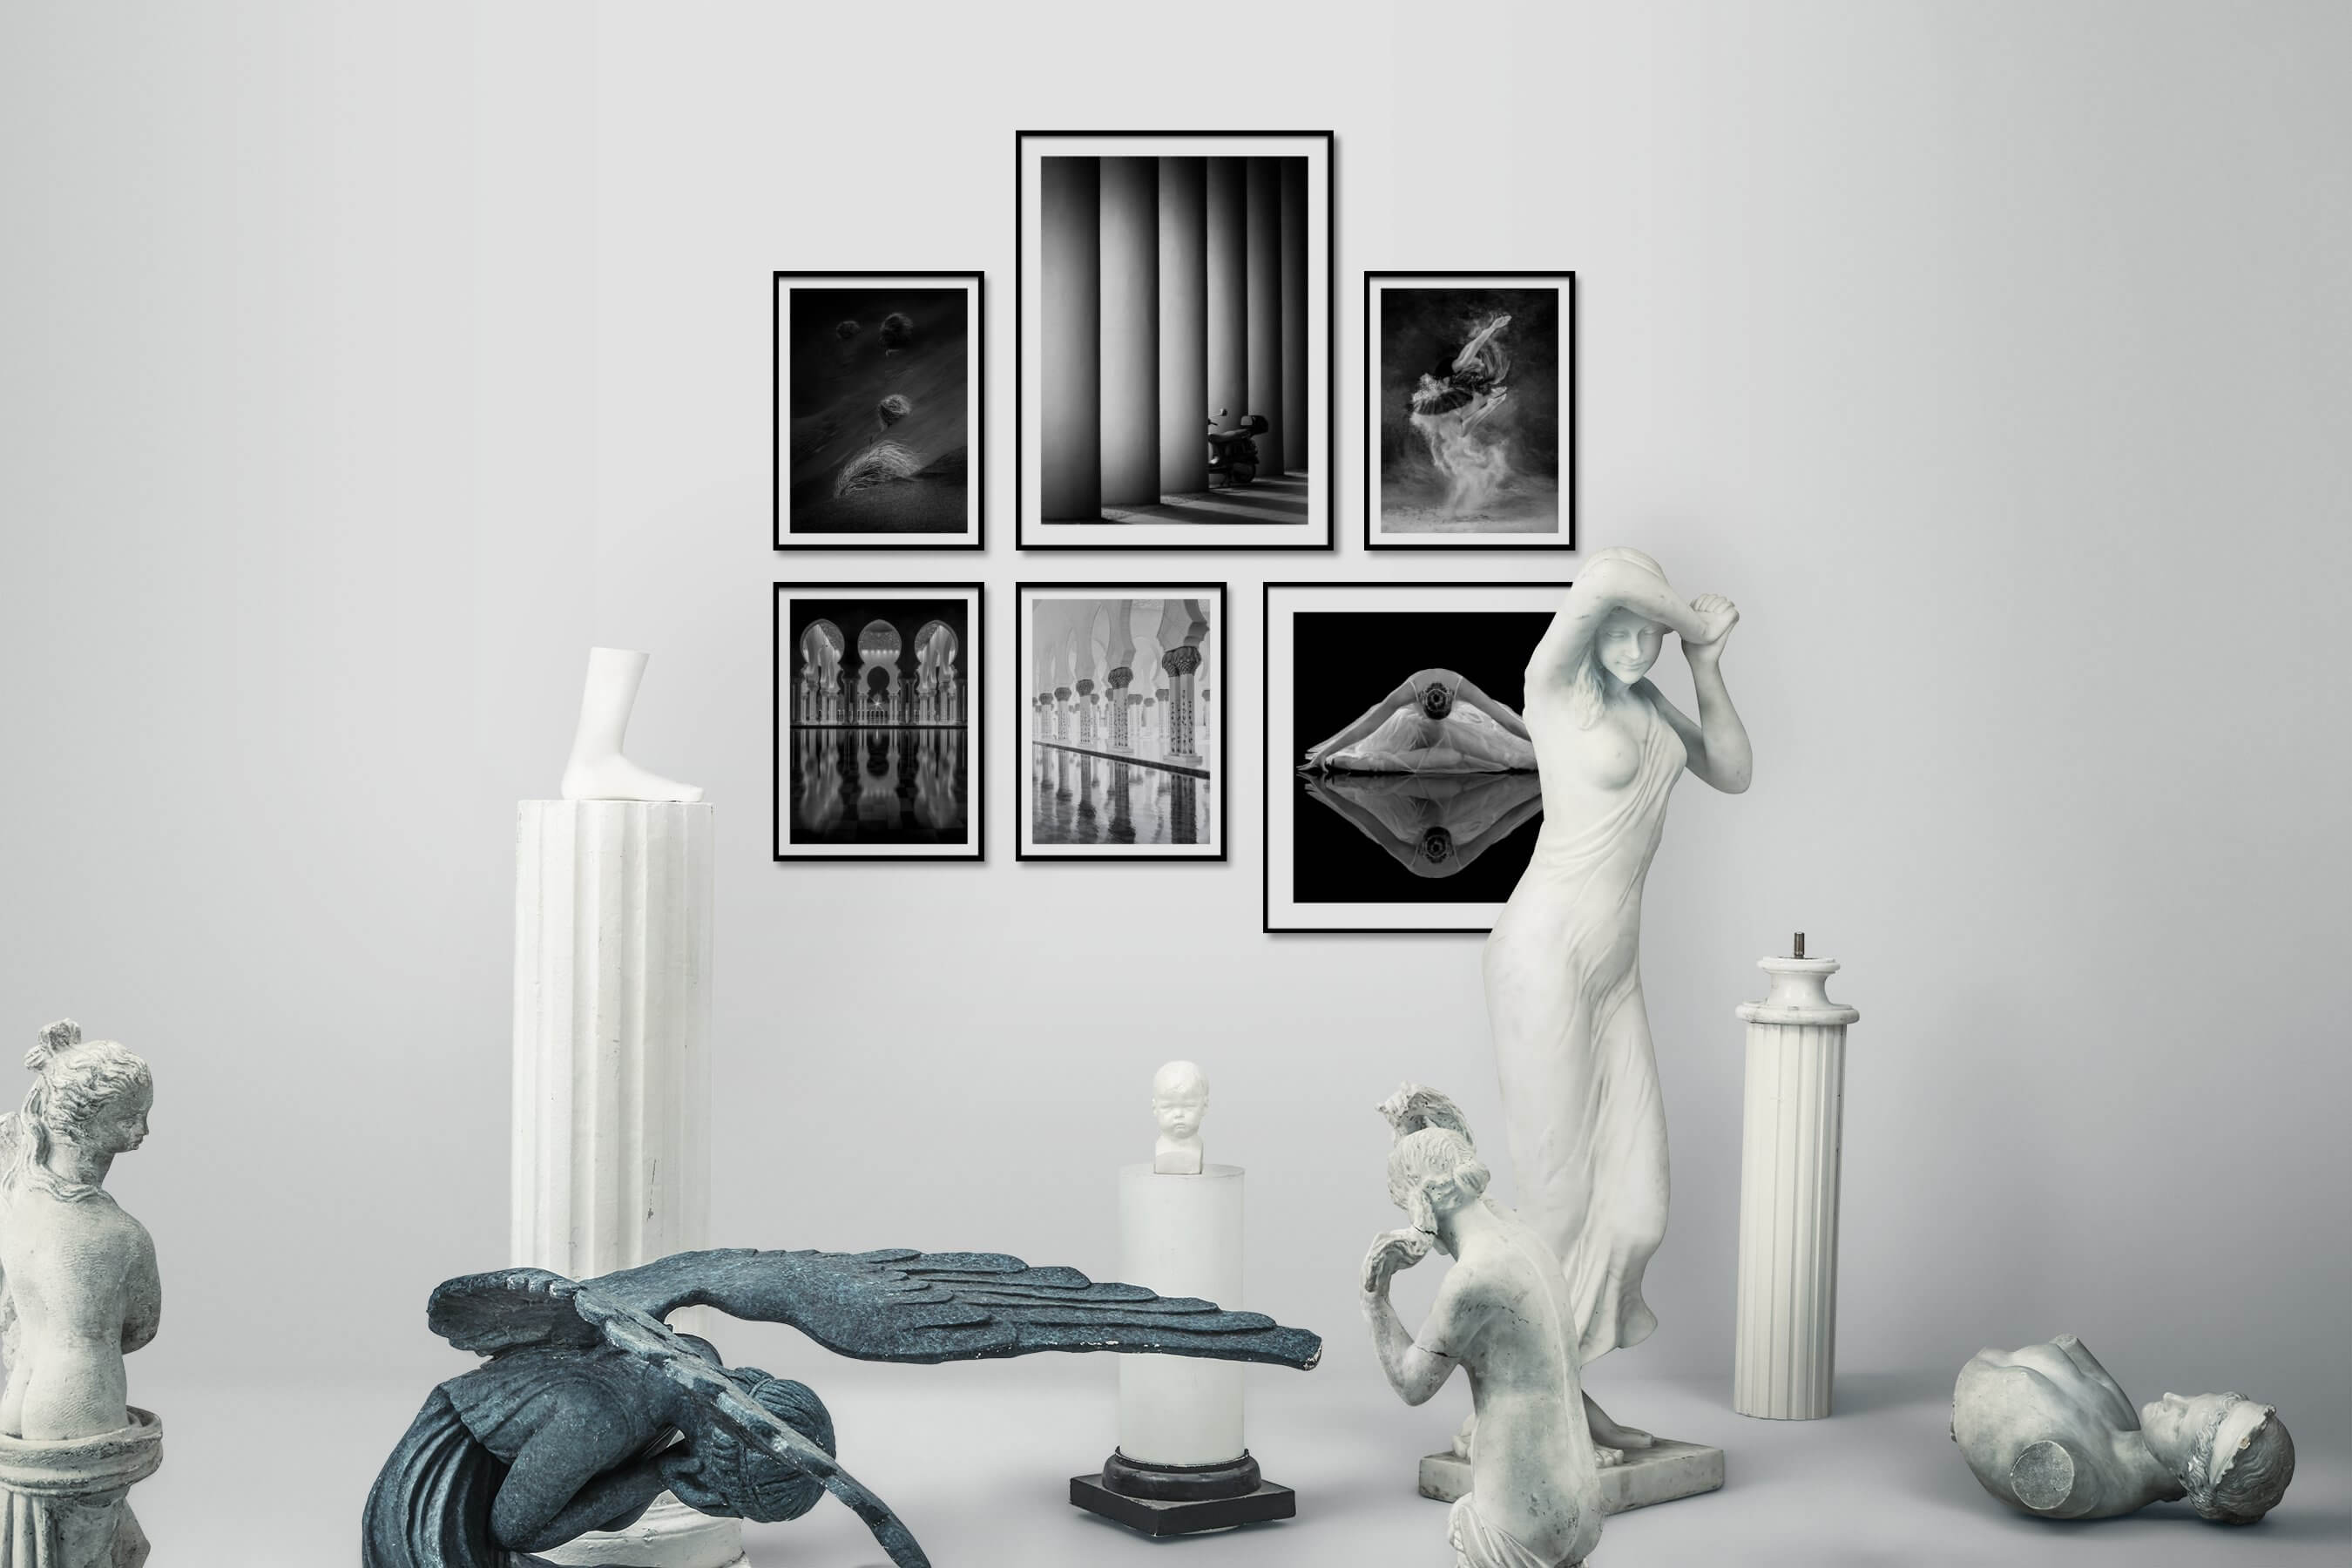 Gallery wall idea with six framed pictures arranged on a wall depicting Black & White, For the Minimalist, Nature, For the Moderate, City Life, and Fashion & Beauty